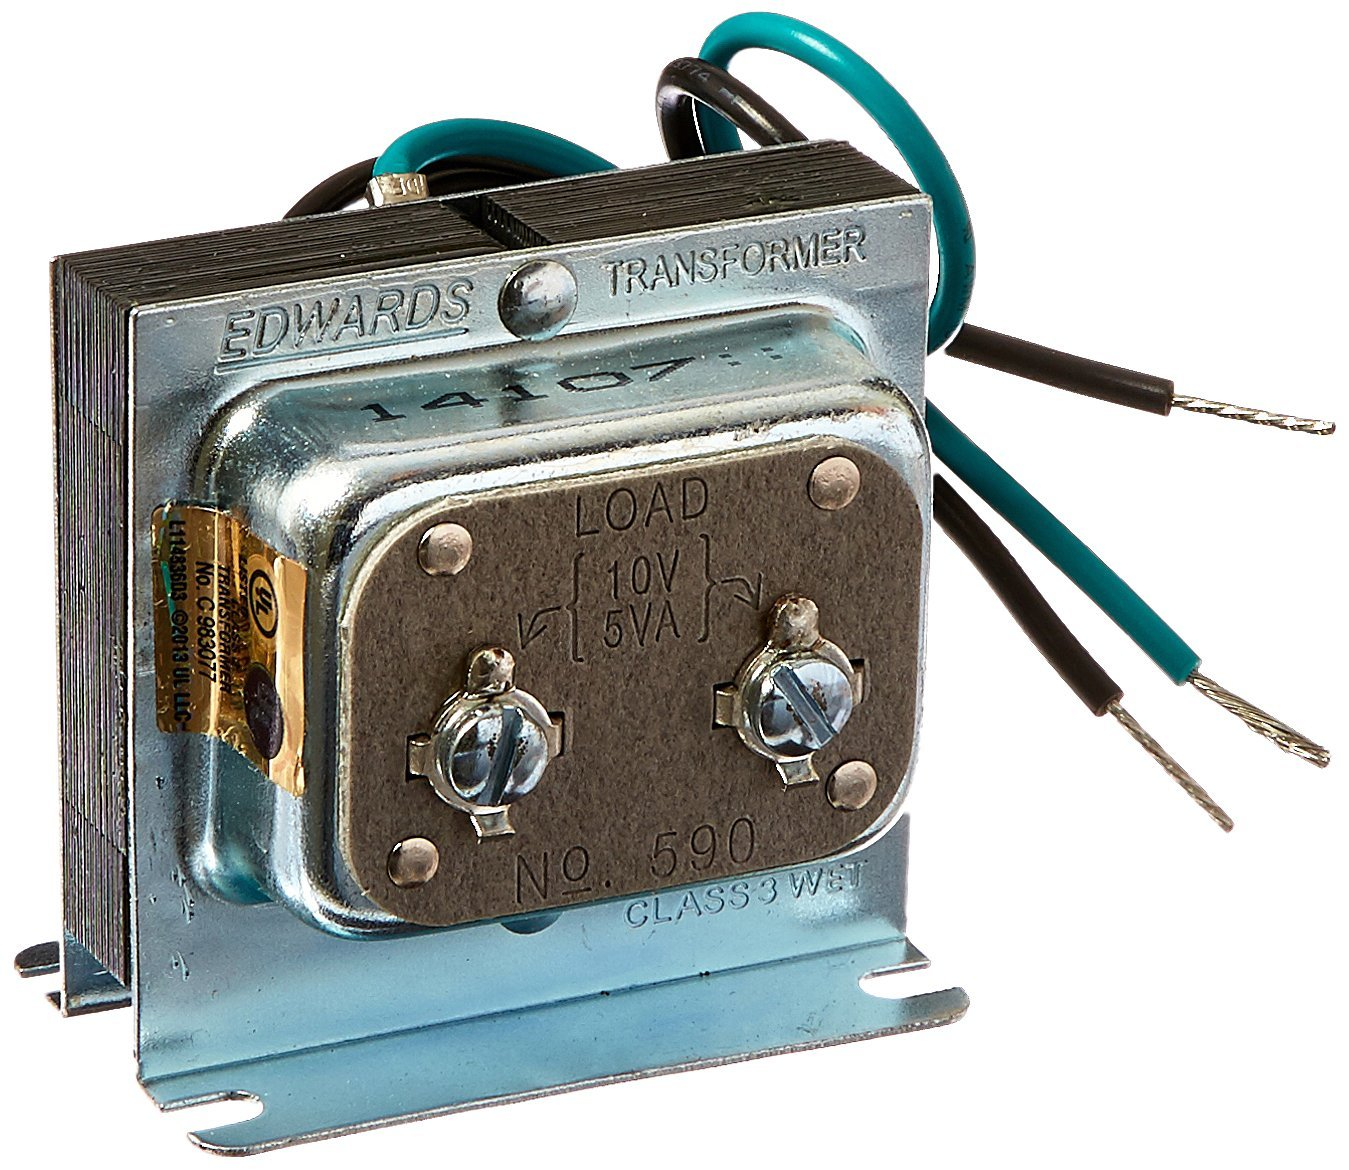 hight resolution of 10v transformer not compatible if you look closely you can see that at